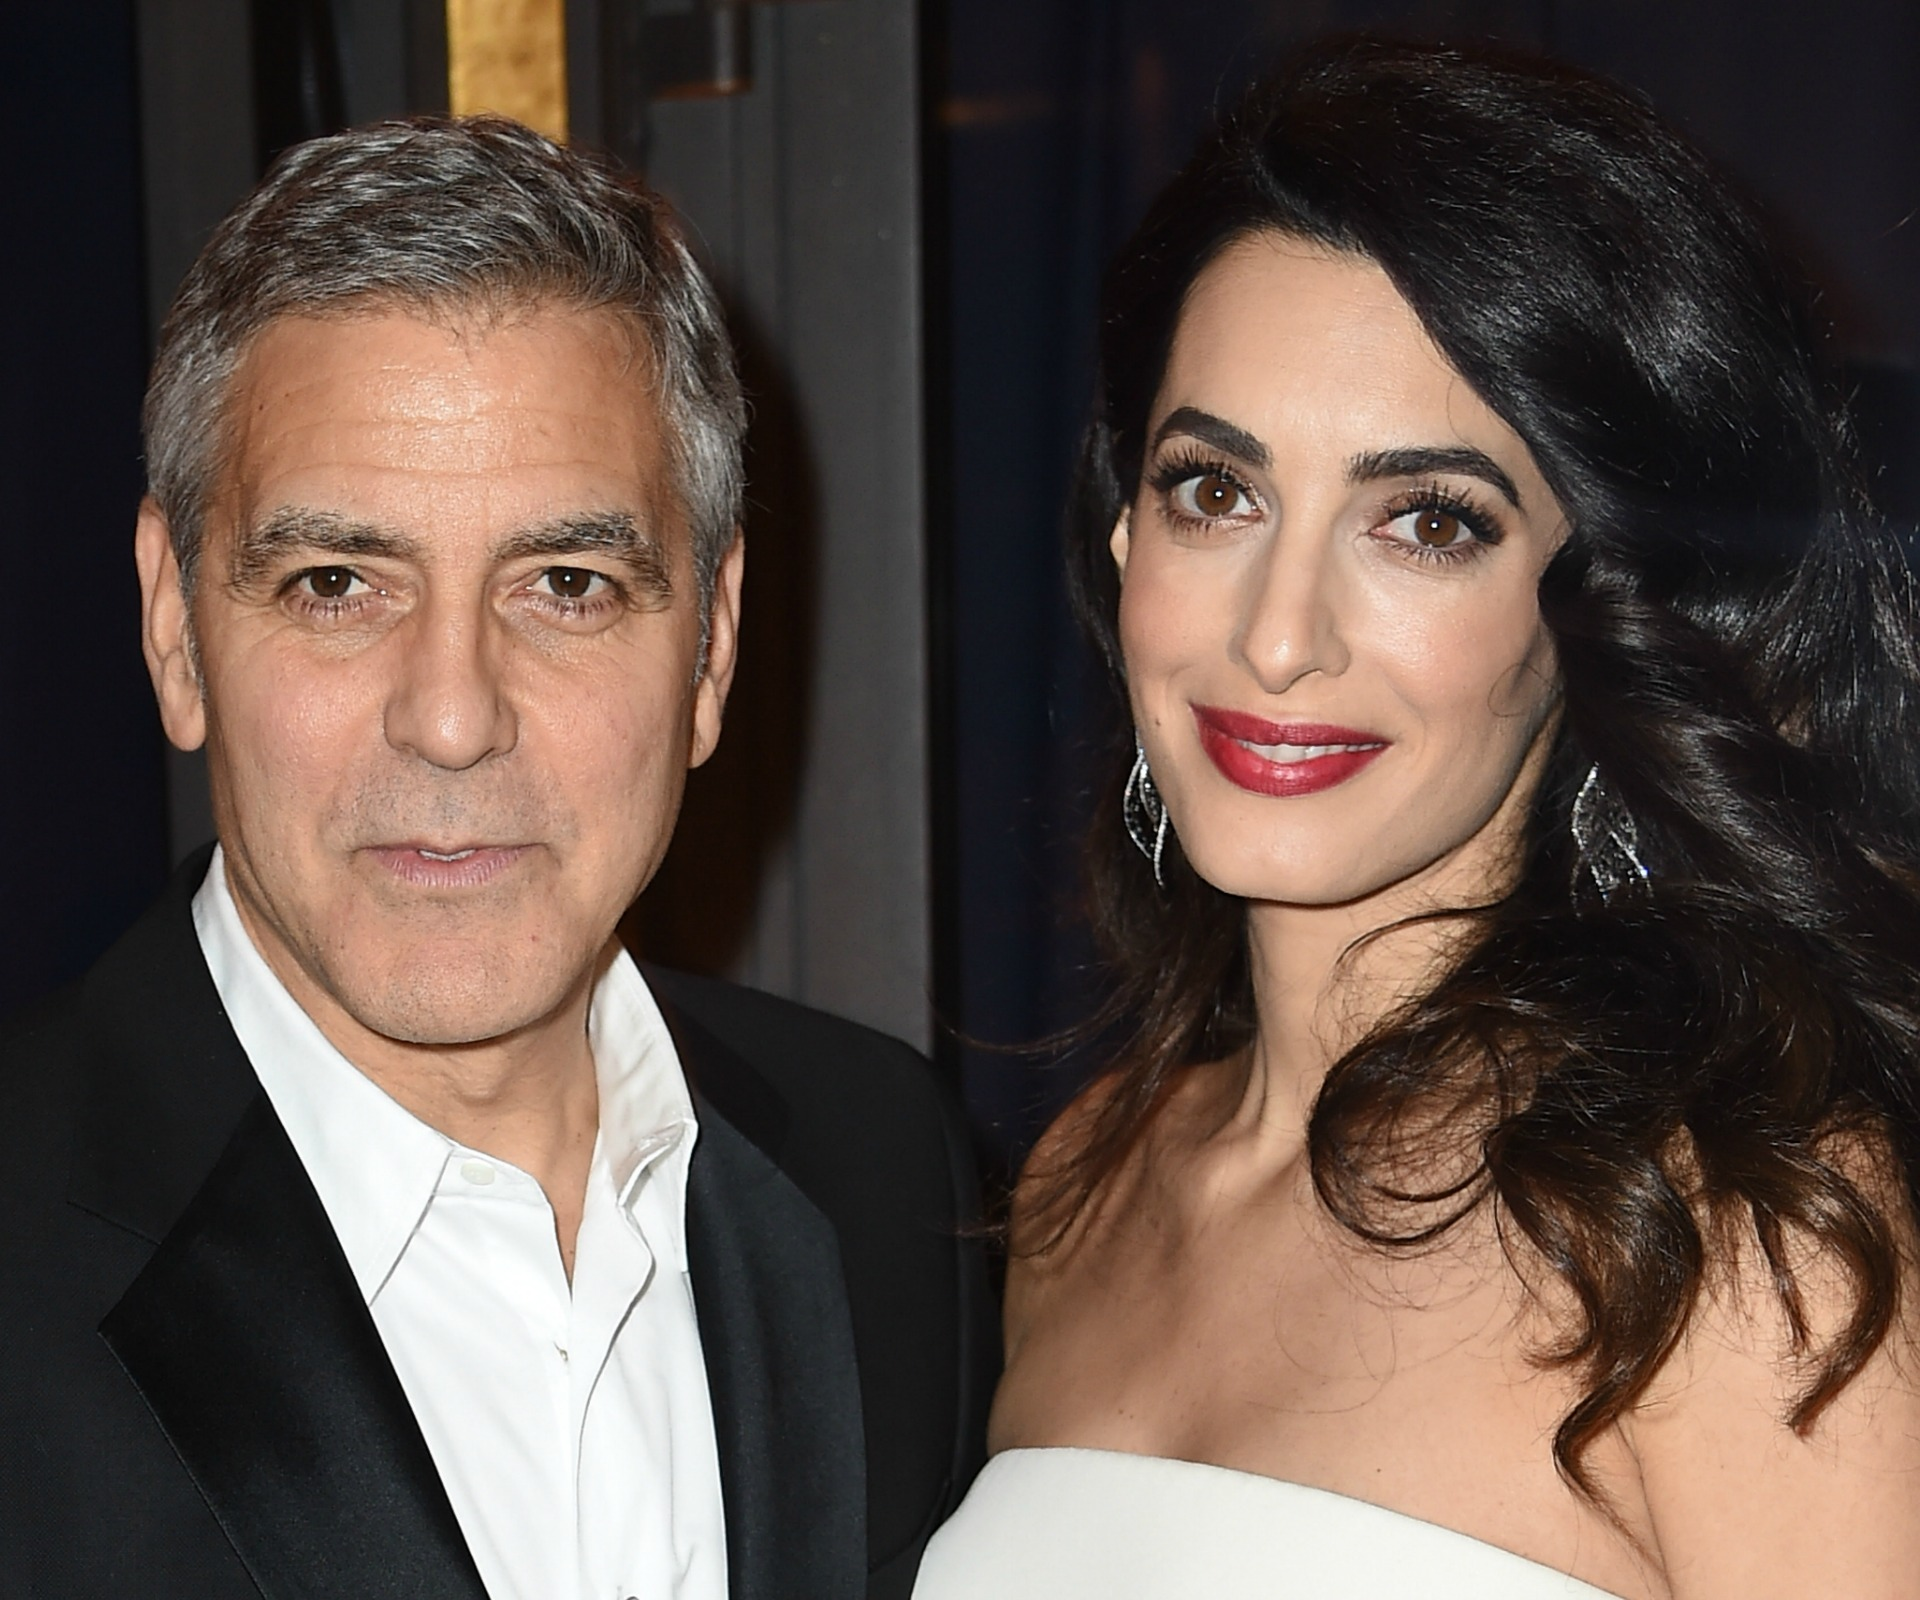 George and Amal Clooney Partner with UNICEF